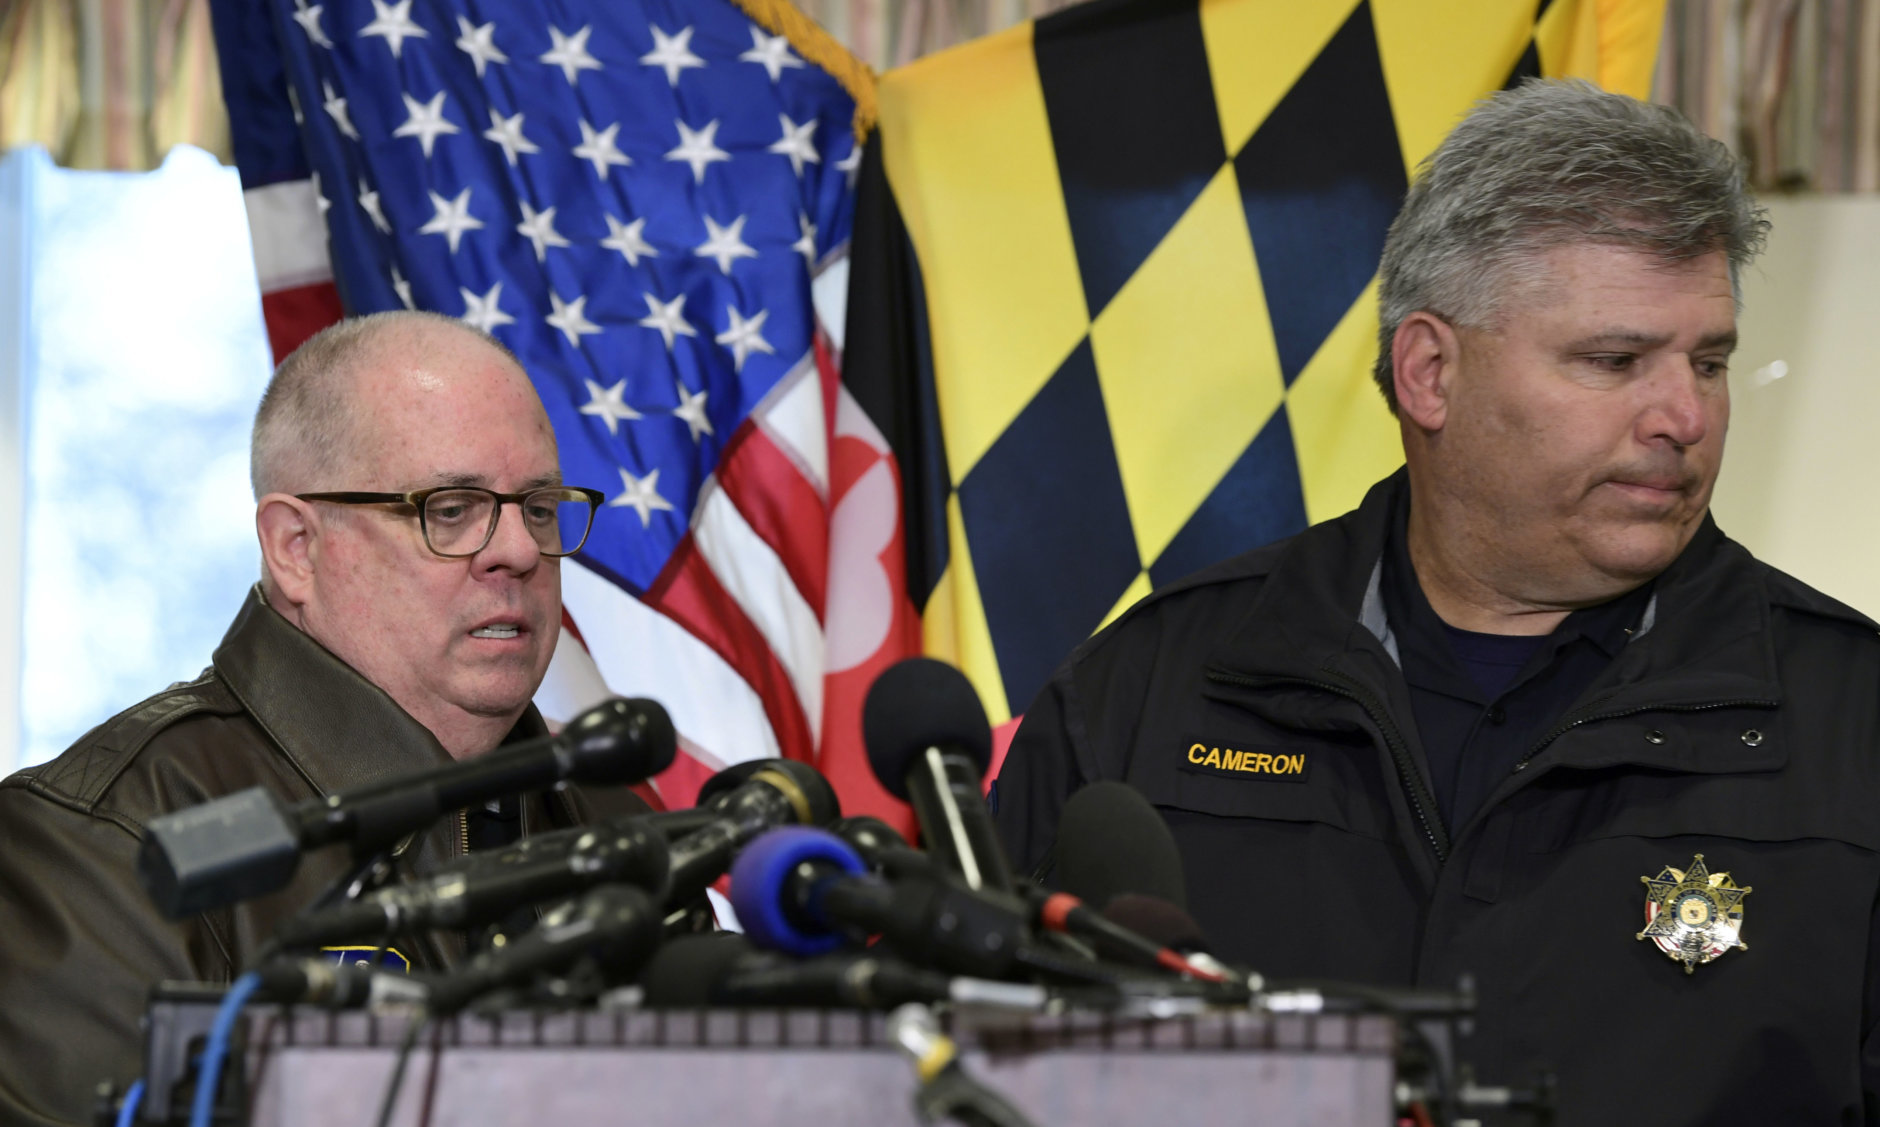 St. Mary's County Sheriff Tim Cameron, right, steps aside as Maryland Gov. Larry Hogan, left, begins to speak about the shooting at Great Mills High School during a news conference in Great Mills, Md., Tuesday, March 20, 2018. (AP Photo/Susan Walsh)